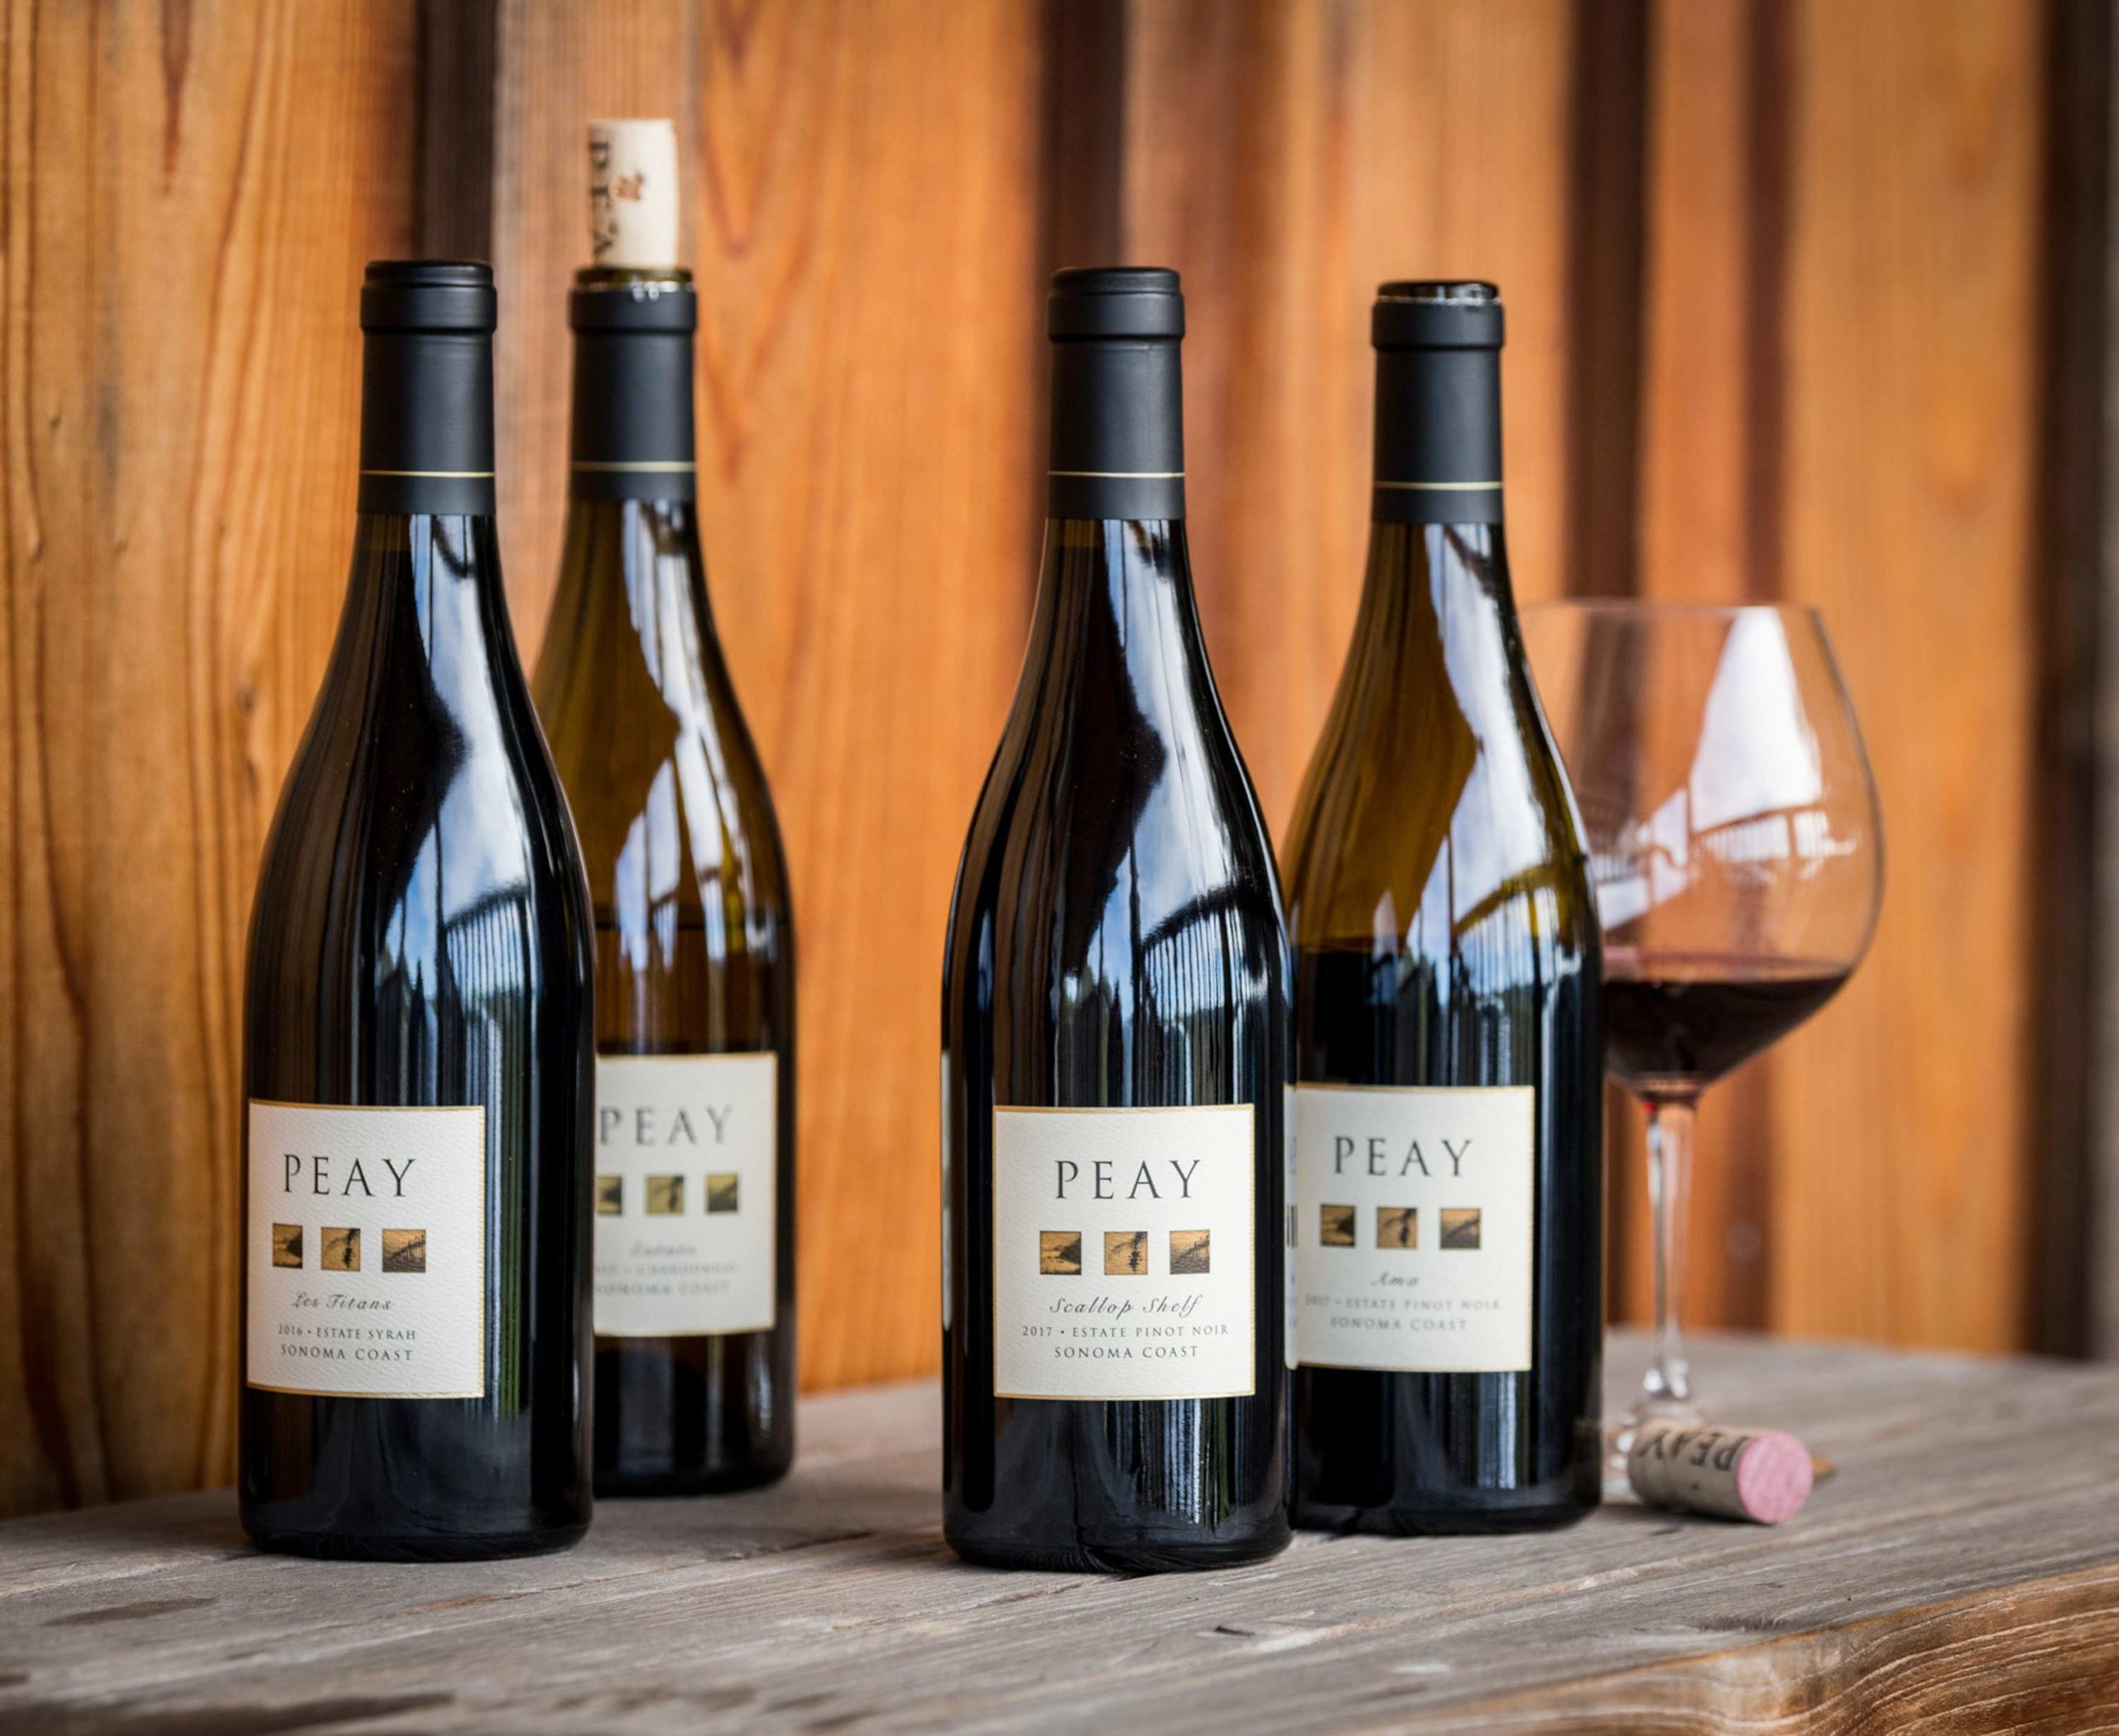 Featured image for Article: 2015 Peay Vineyards Pomarium Estate Pinot noir, Sonoma Coast